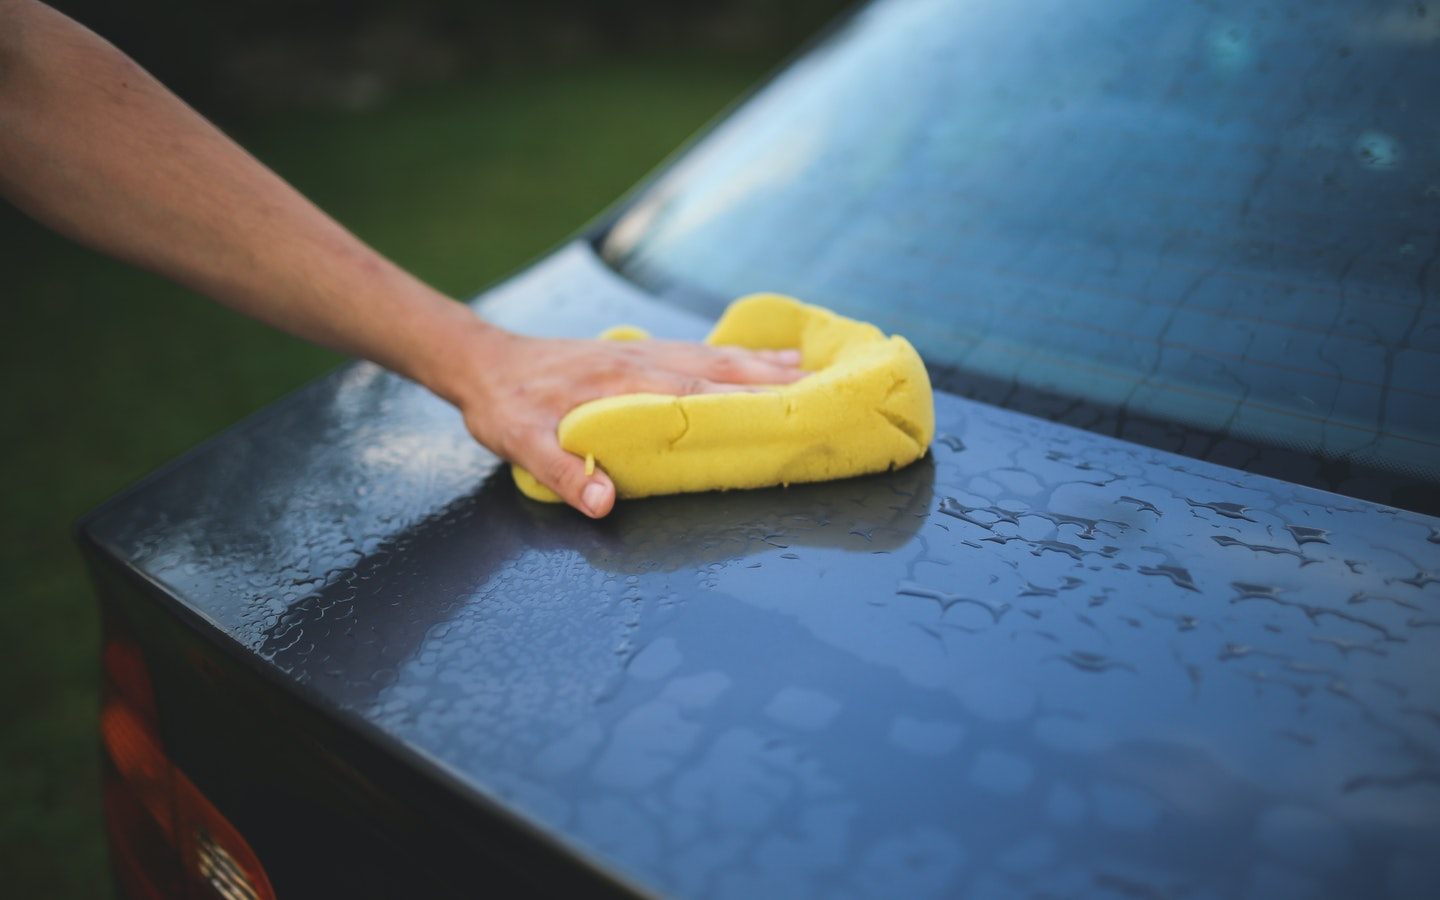 Car being cleaned with sponge